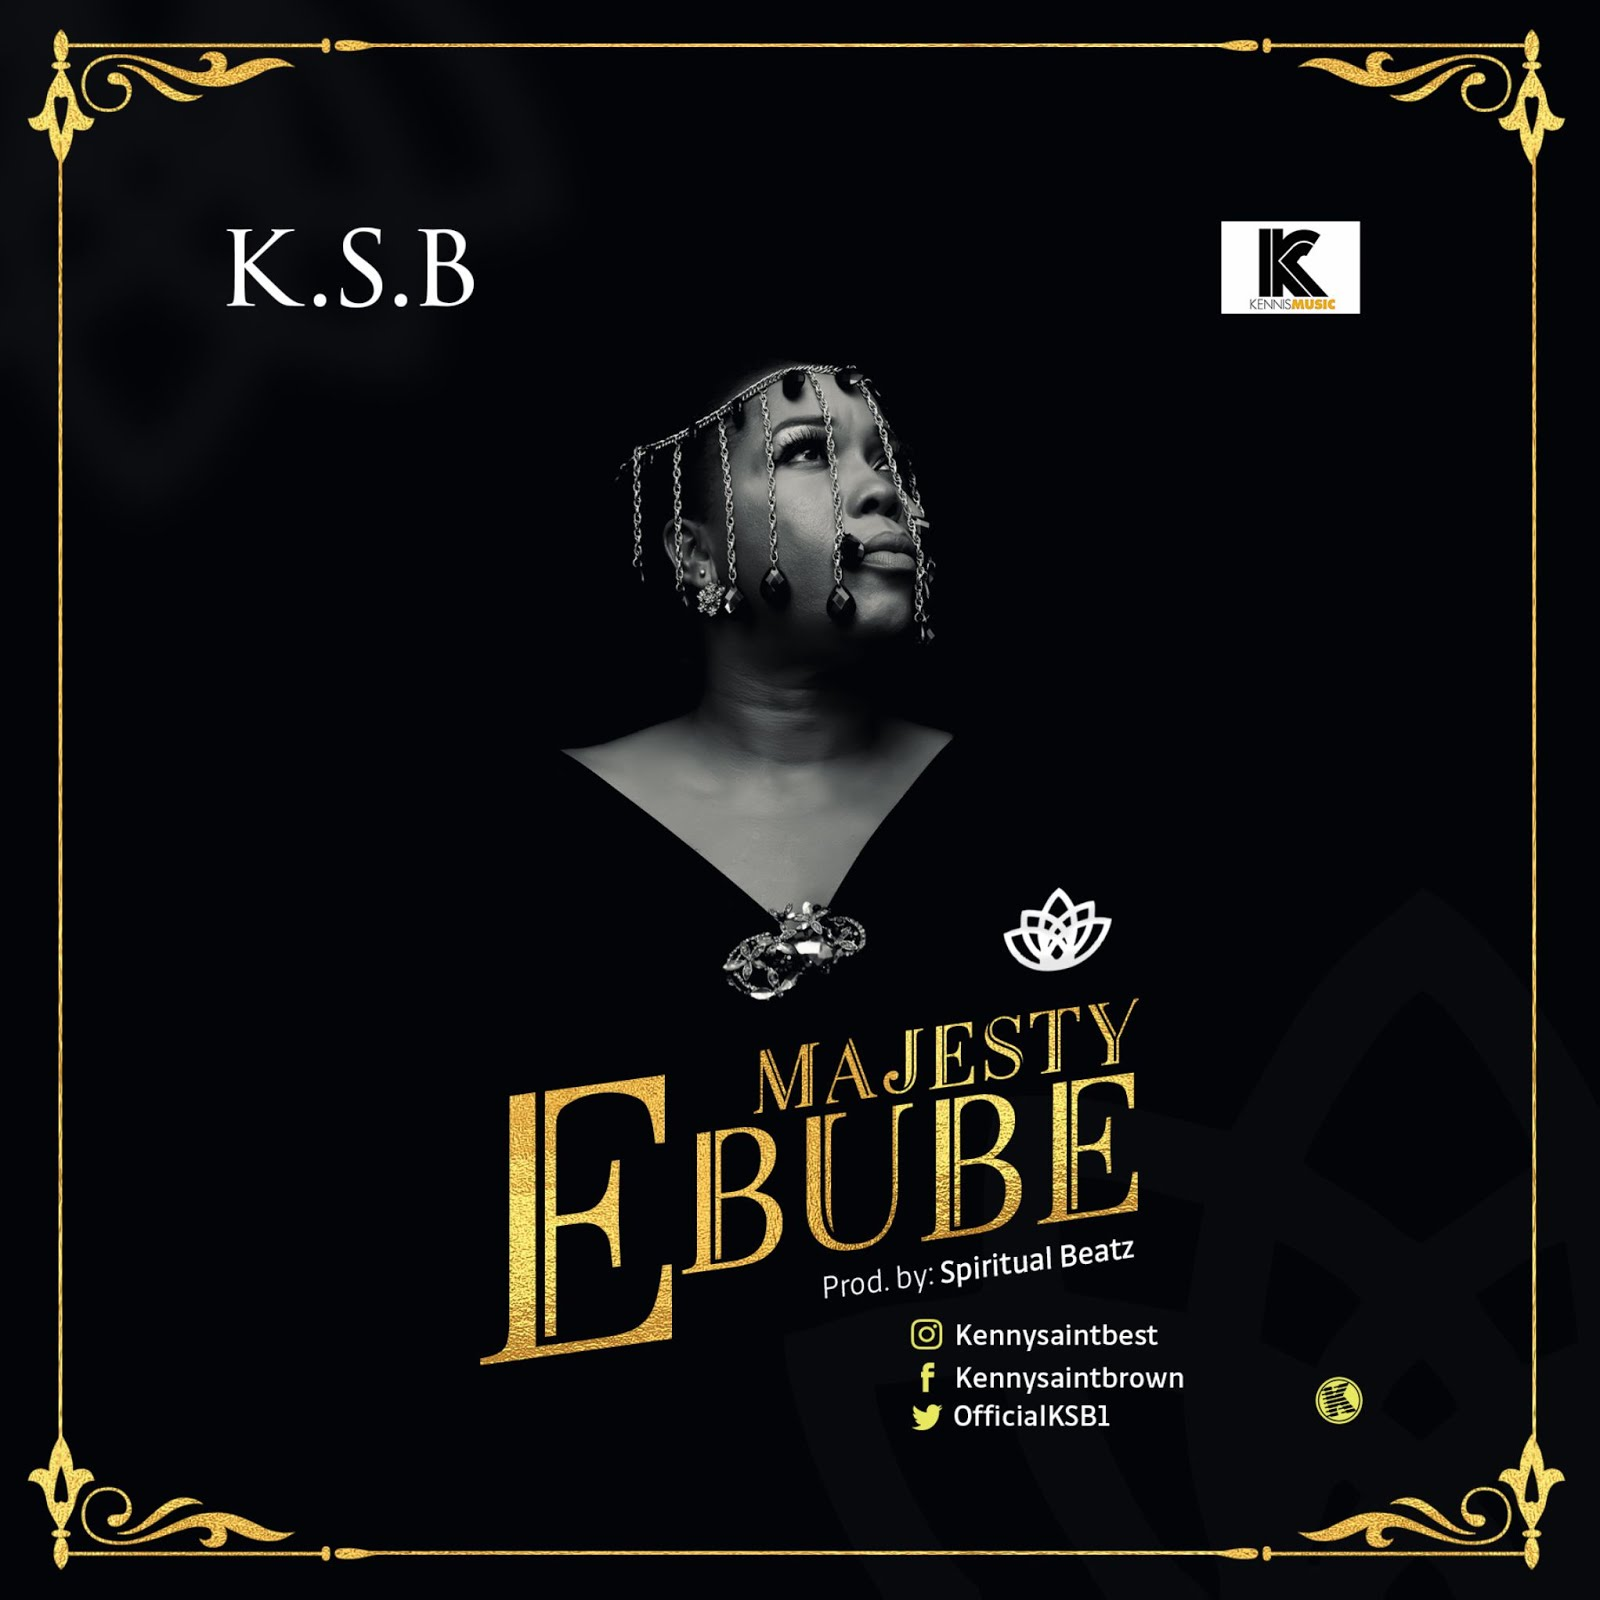 KSB. Ebube. Majesty. Gospel Redefined.